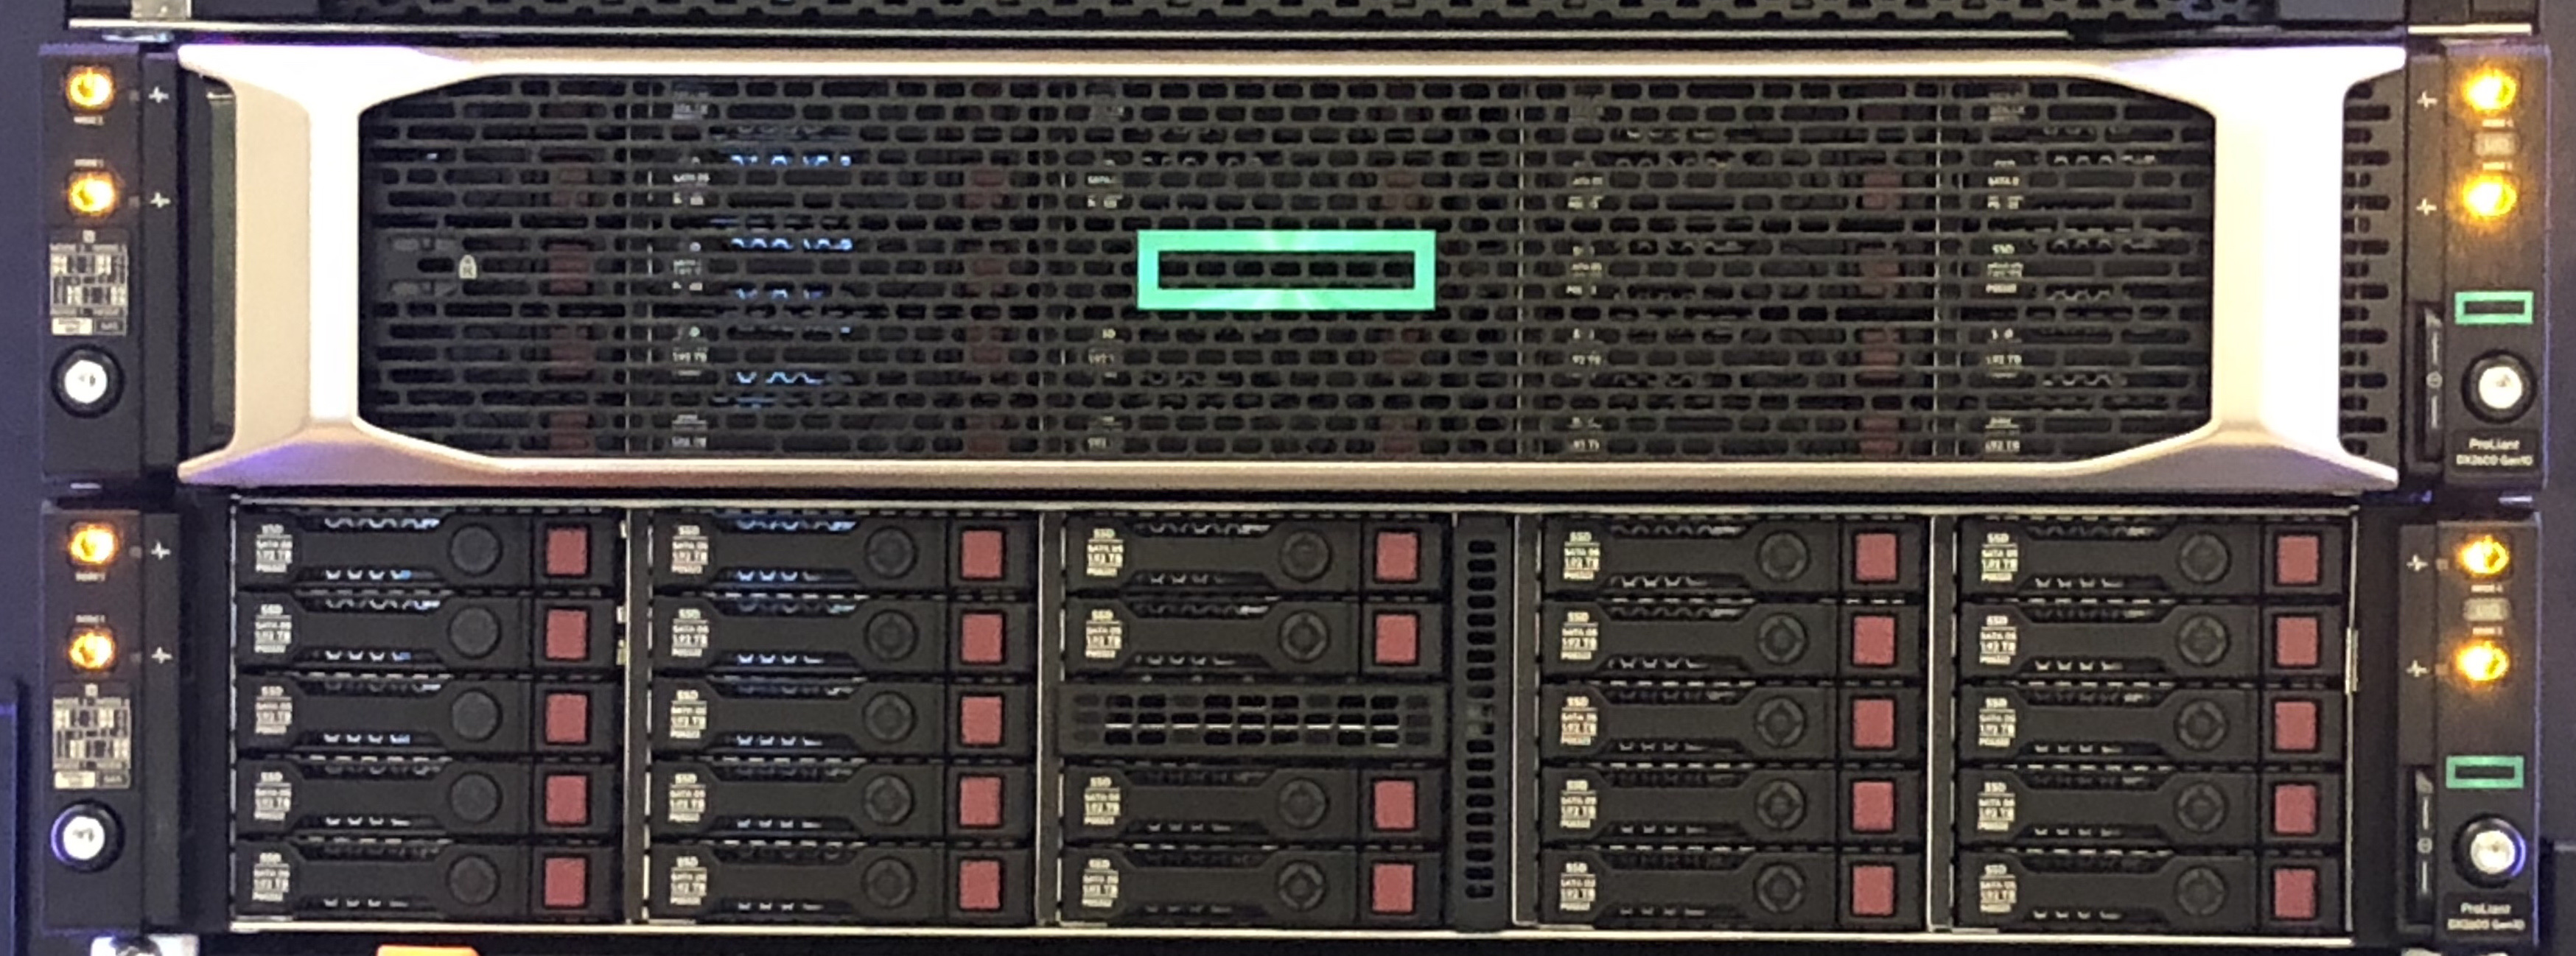 HPE DX Powered on in the WWT ATC. One with bezel, other without.